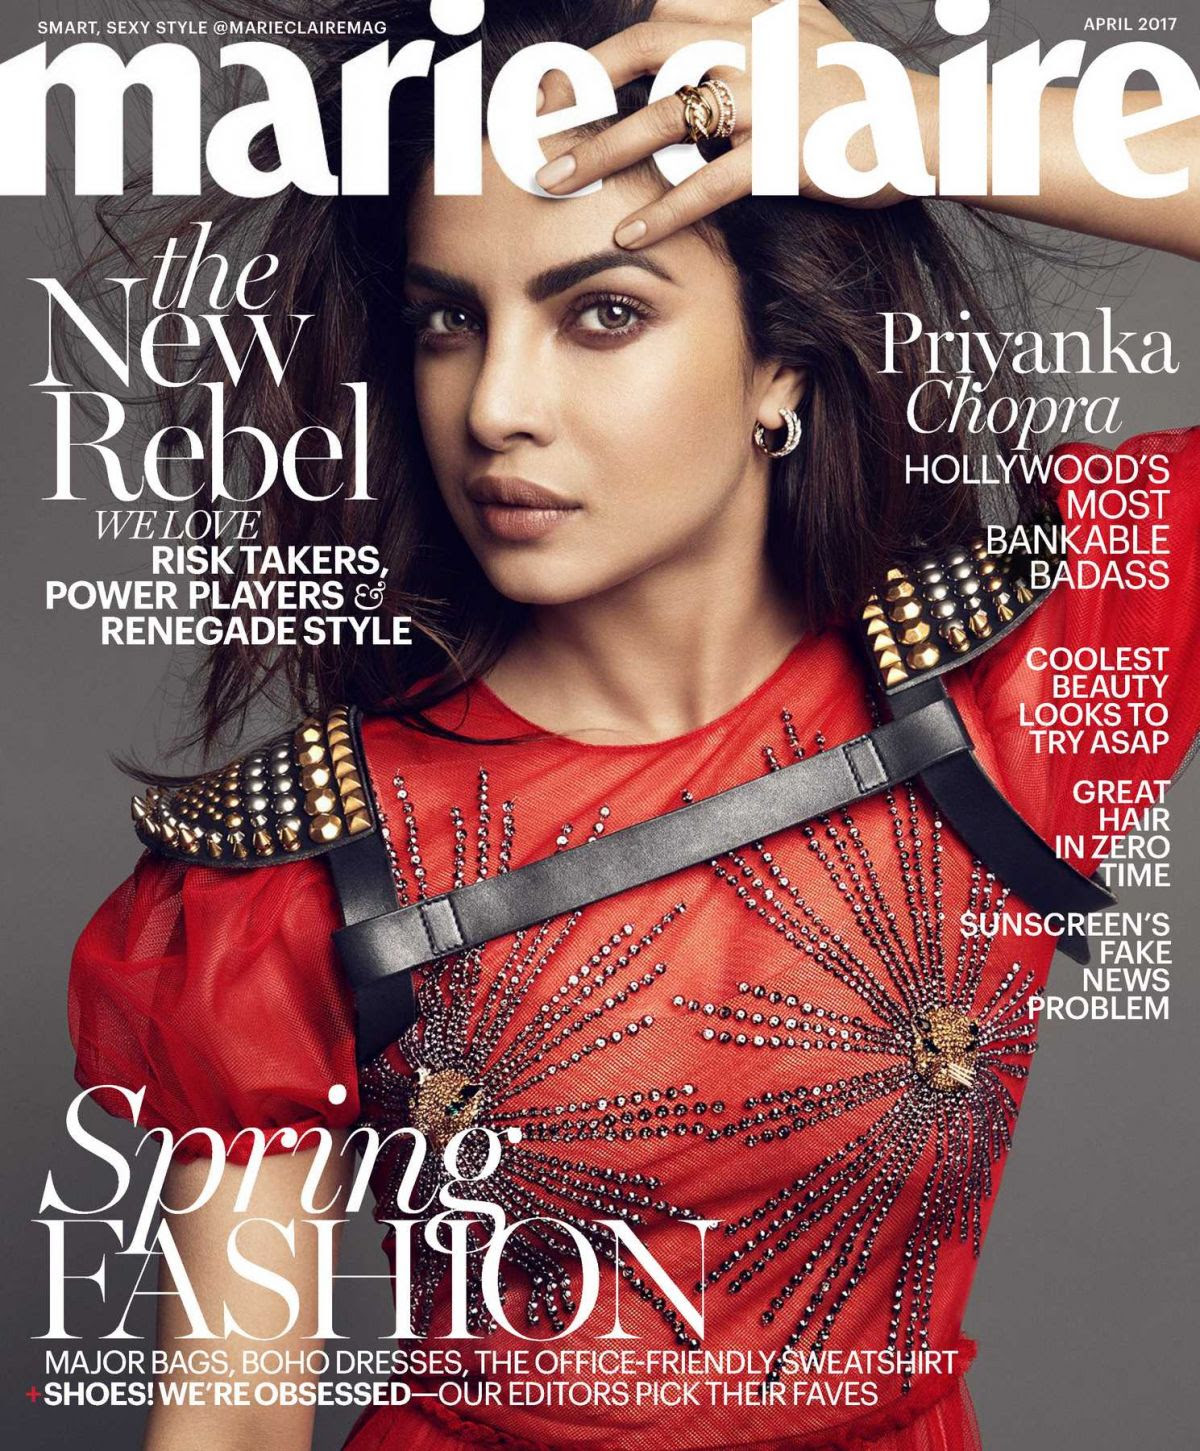 PRIYANKA CHOPRA in Marie Claire Magazine, April 2017